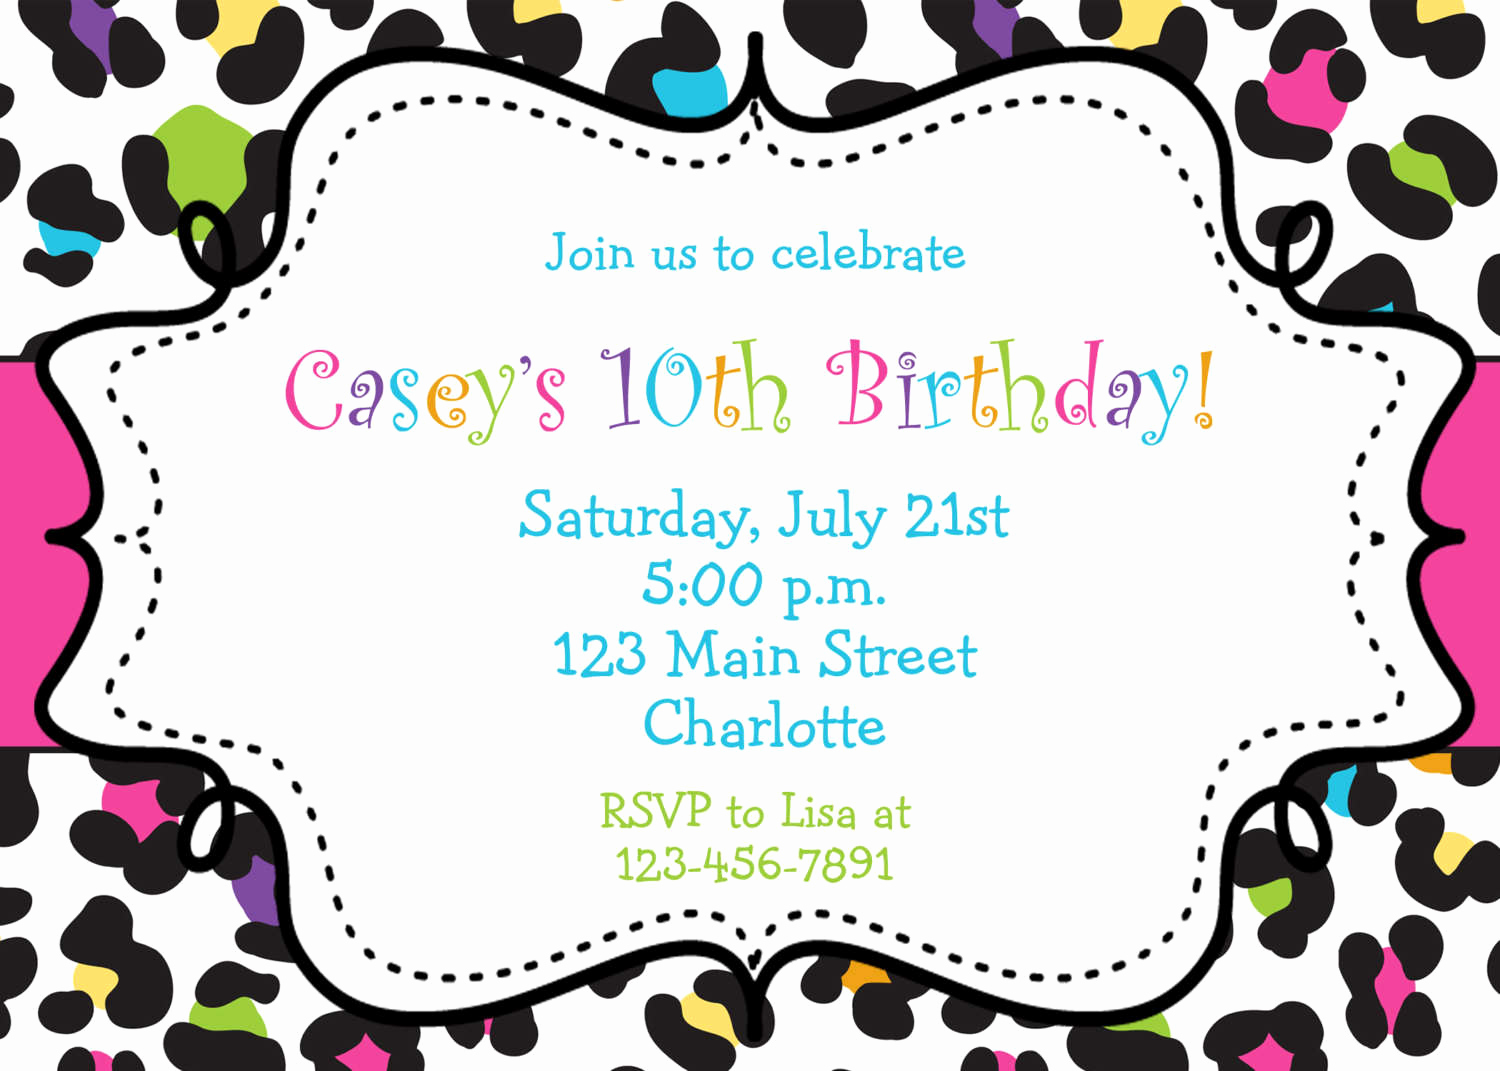 Free Printable Birthday Invitation Templates New Birthday Invitations Browsing Exclusive Animal Print themed